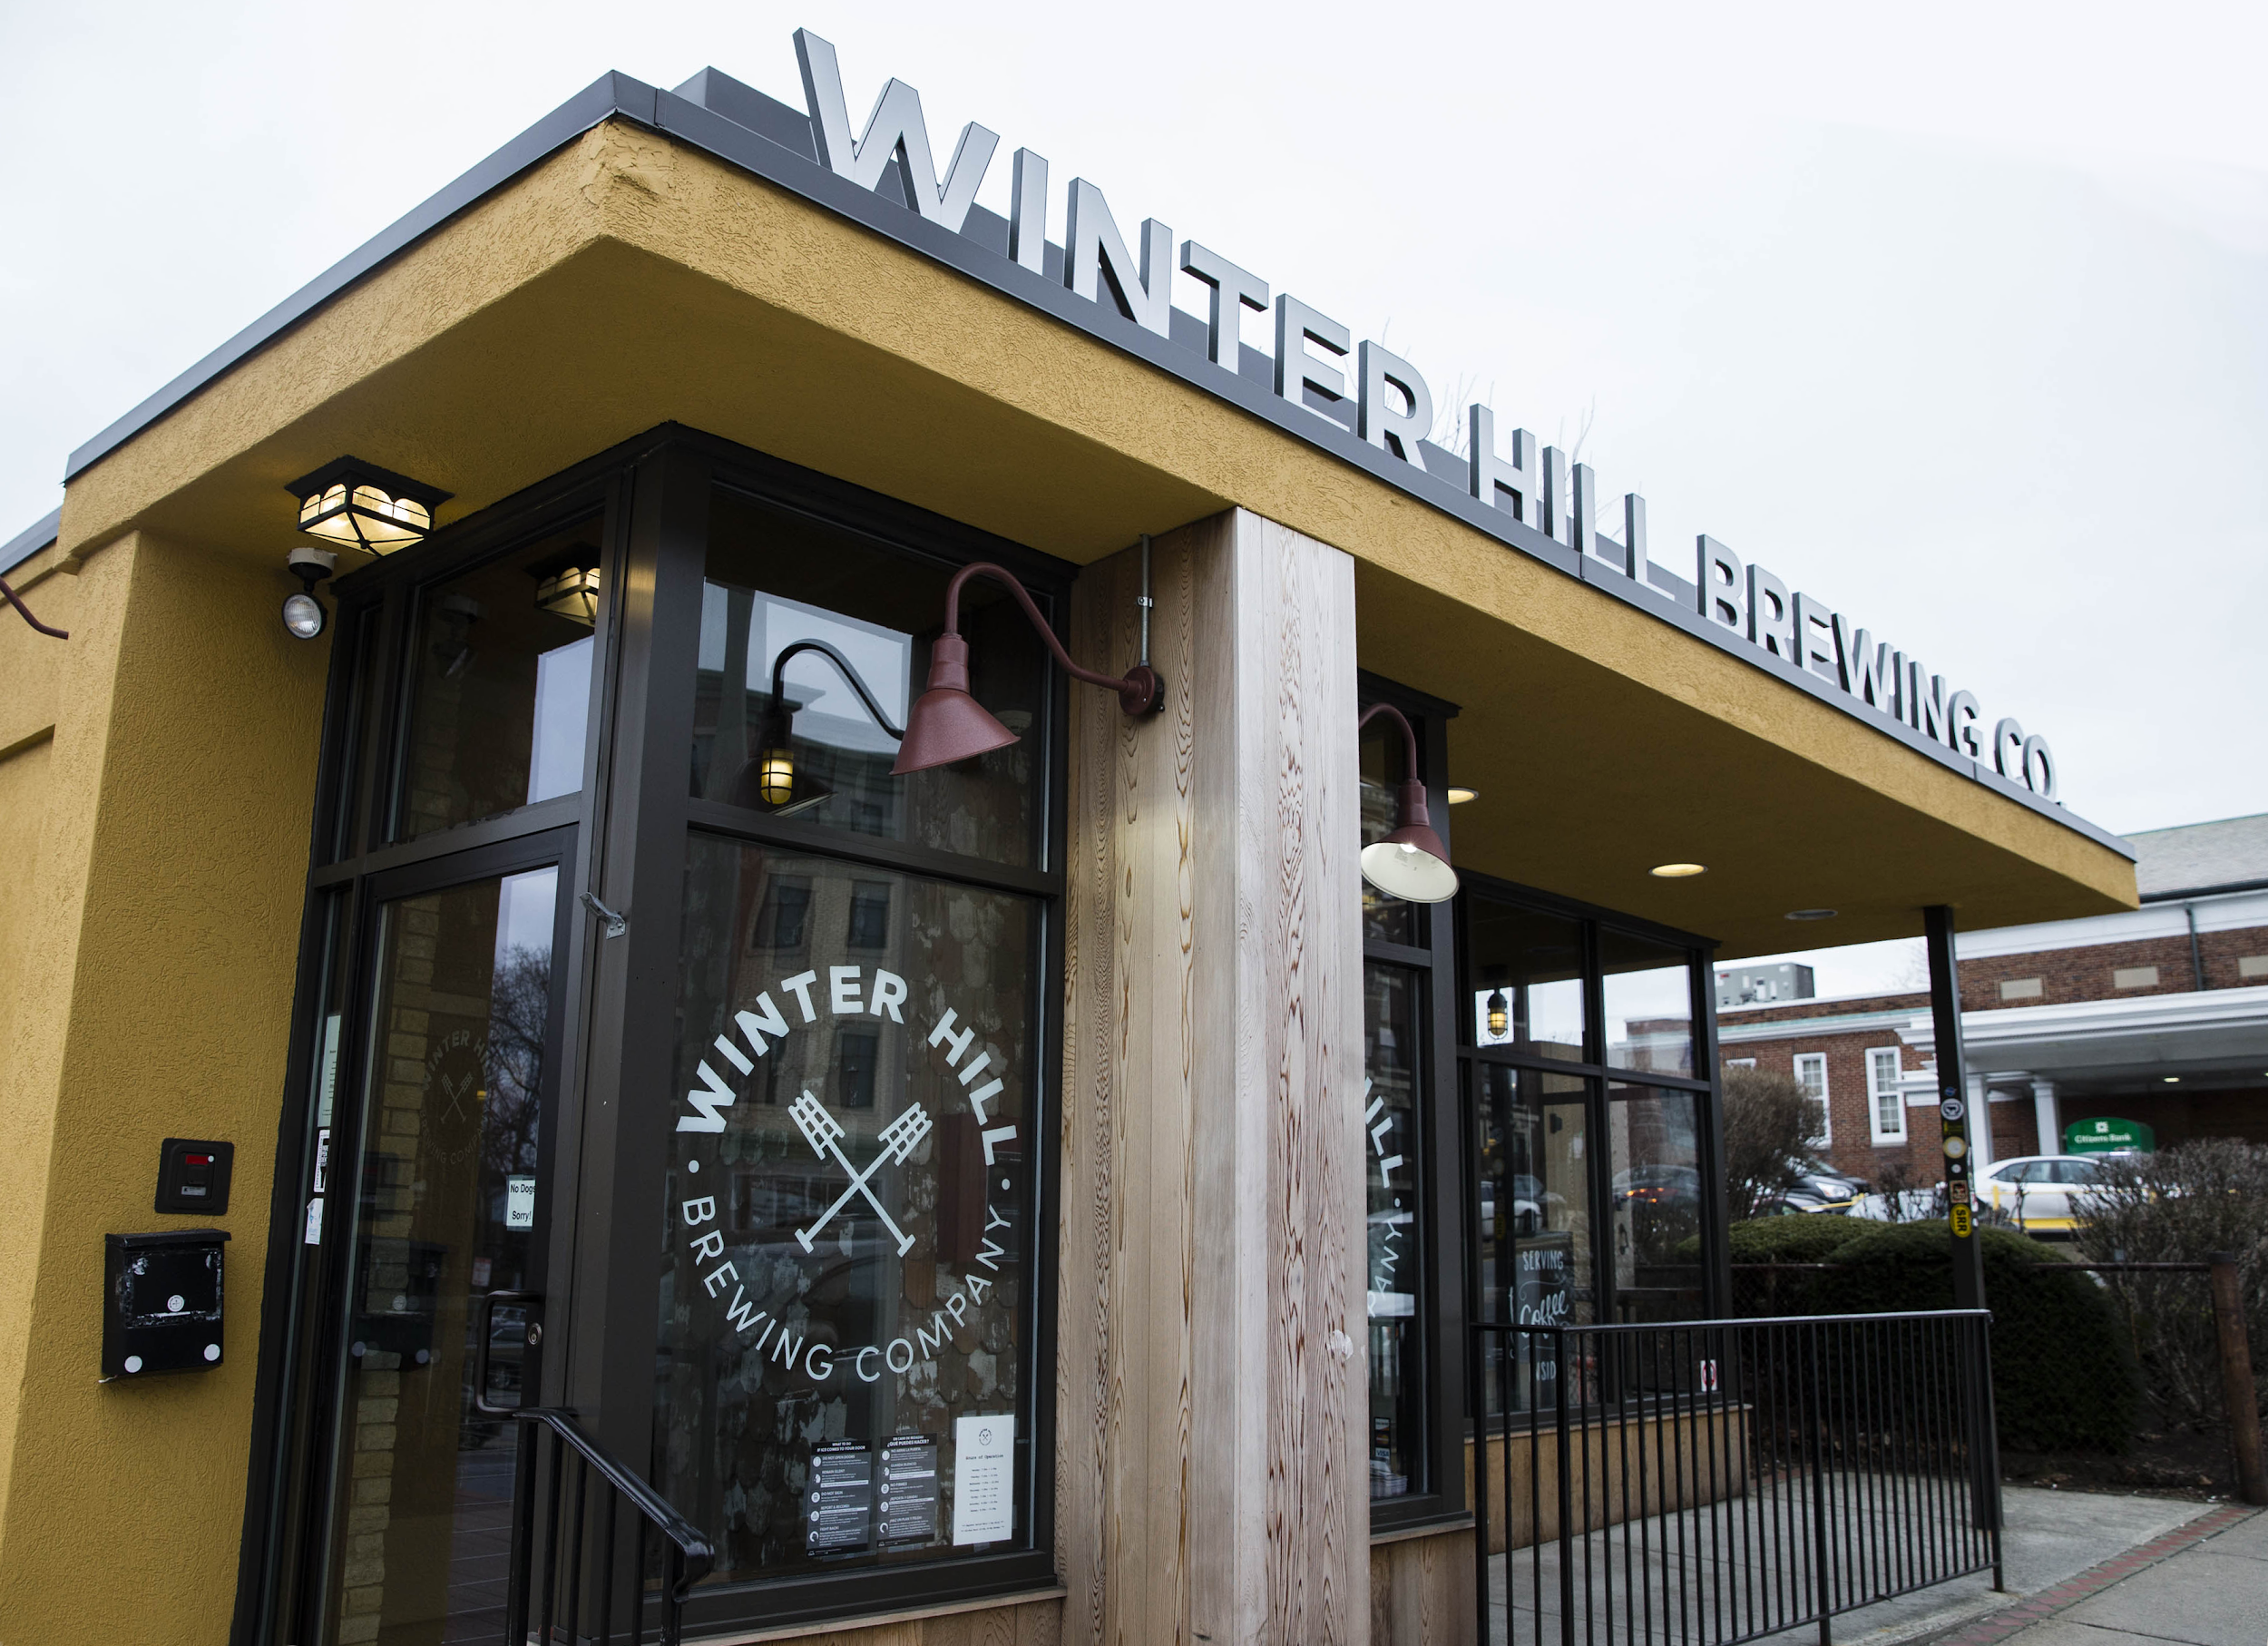 Winter Hill Brewery gets a walk-in cooler and has it installed by N.E.T.R., Inc.